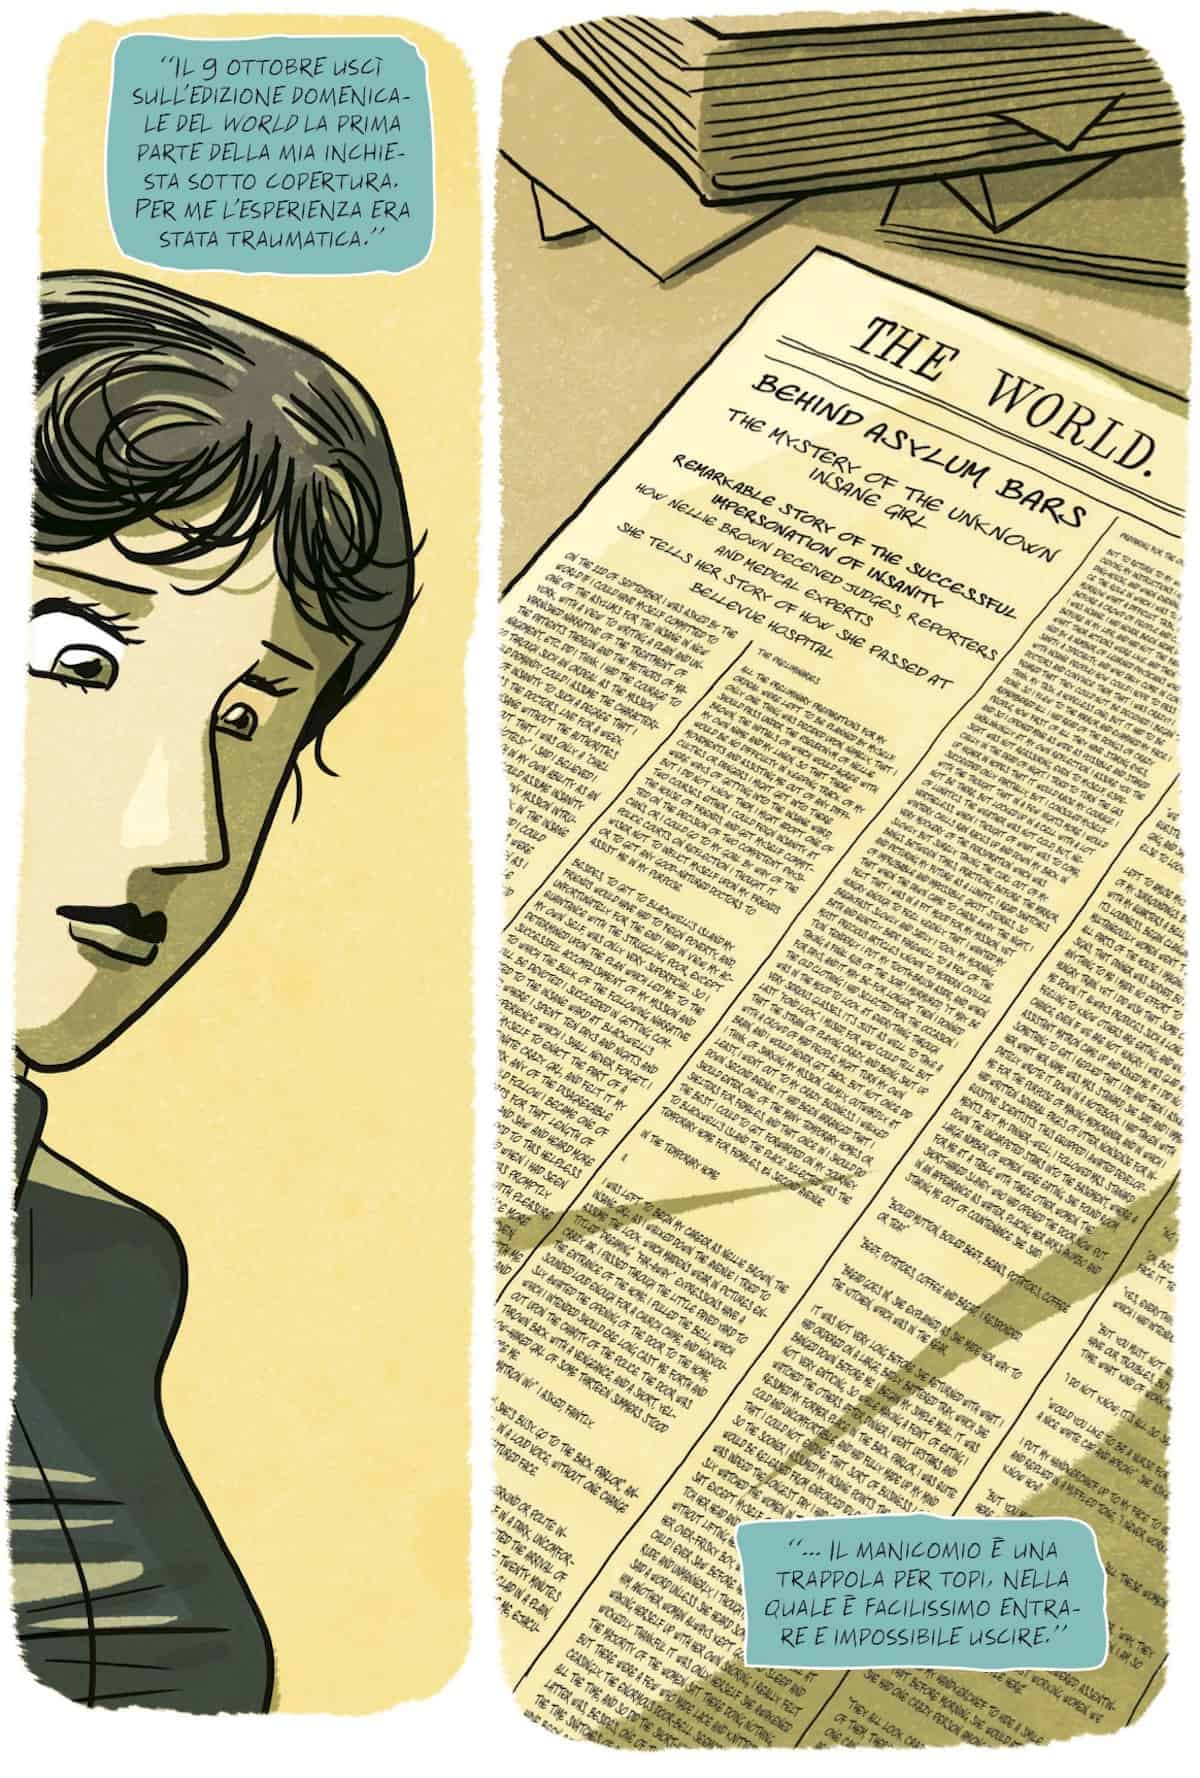 nellie bly graphic novel tunué